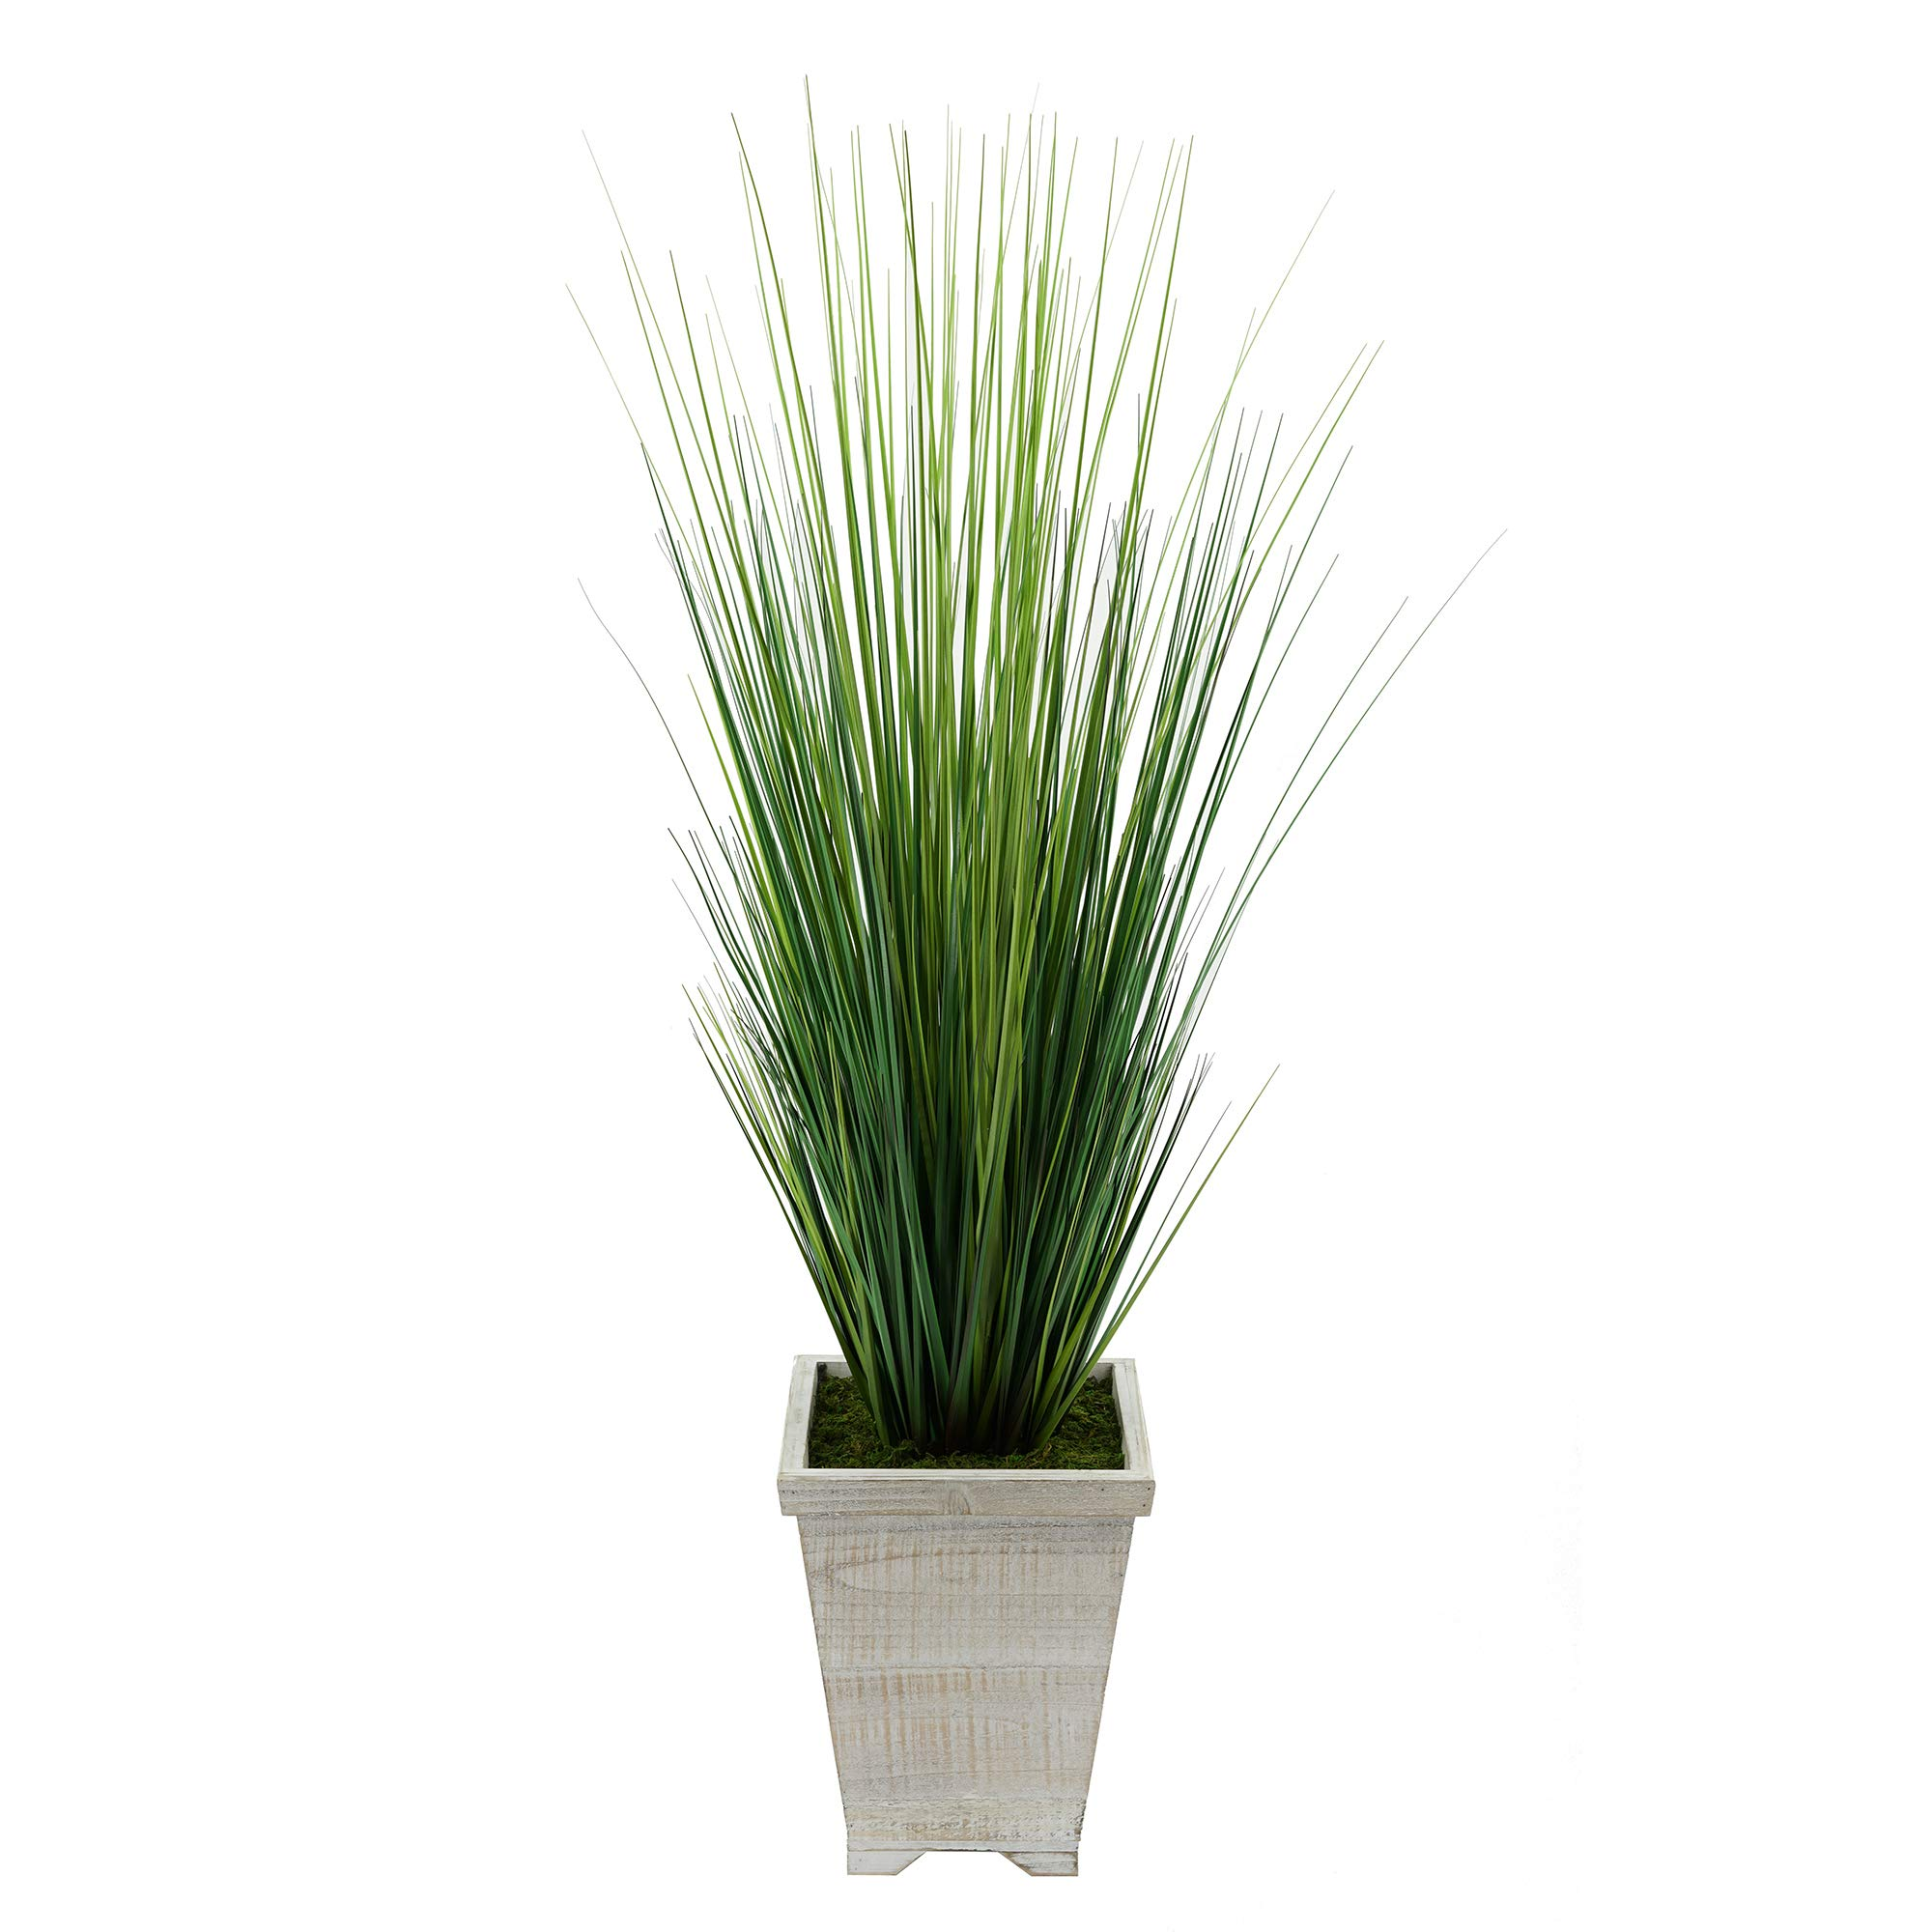 House-of-Silk-Flowers-Artificial-4ft-PVC-Grass-in-Washed-Wood-Planter-White-Washed